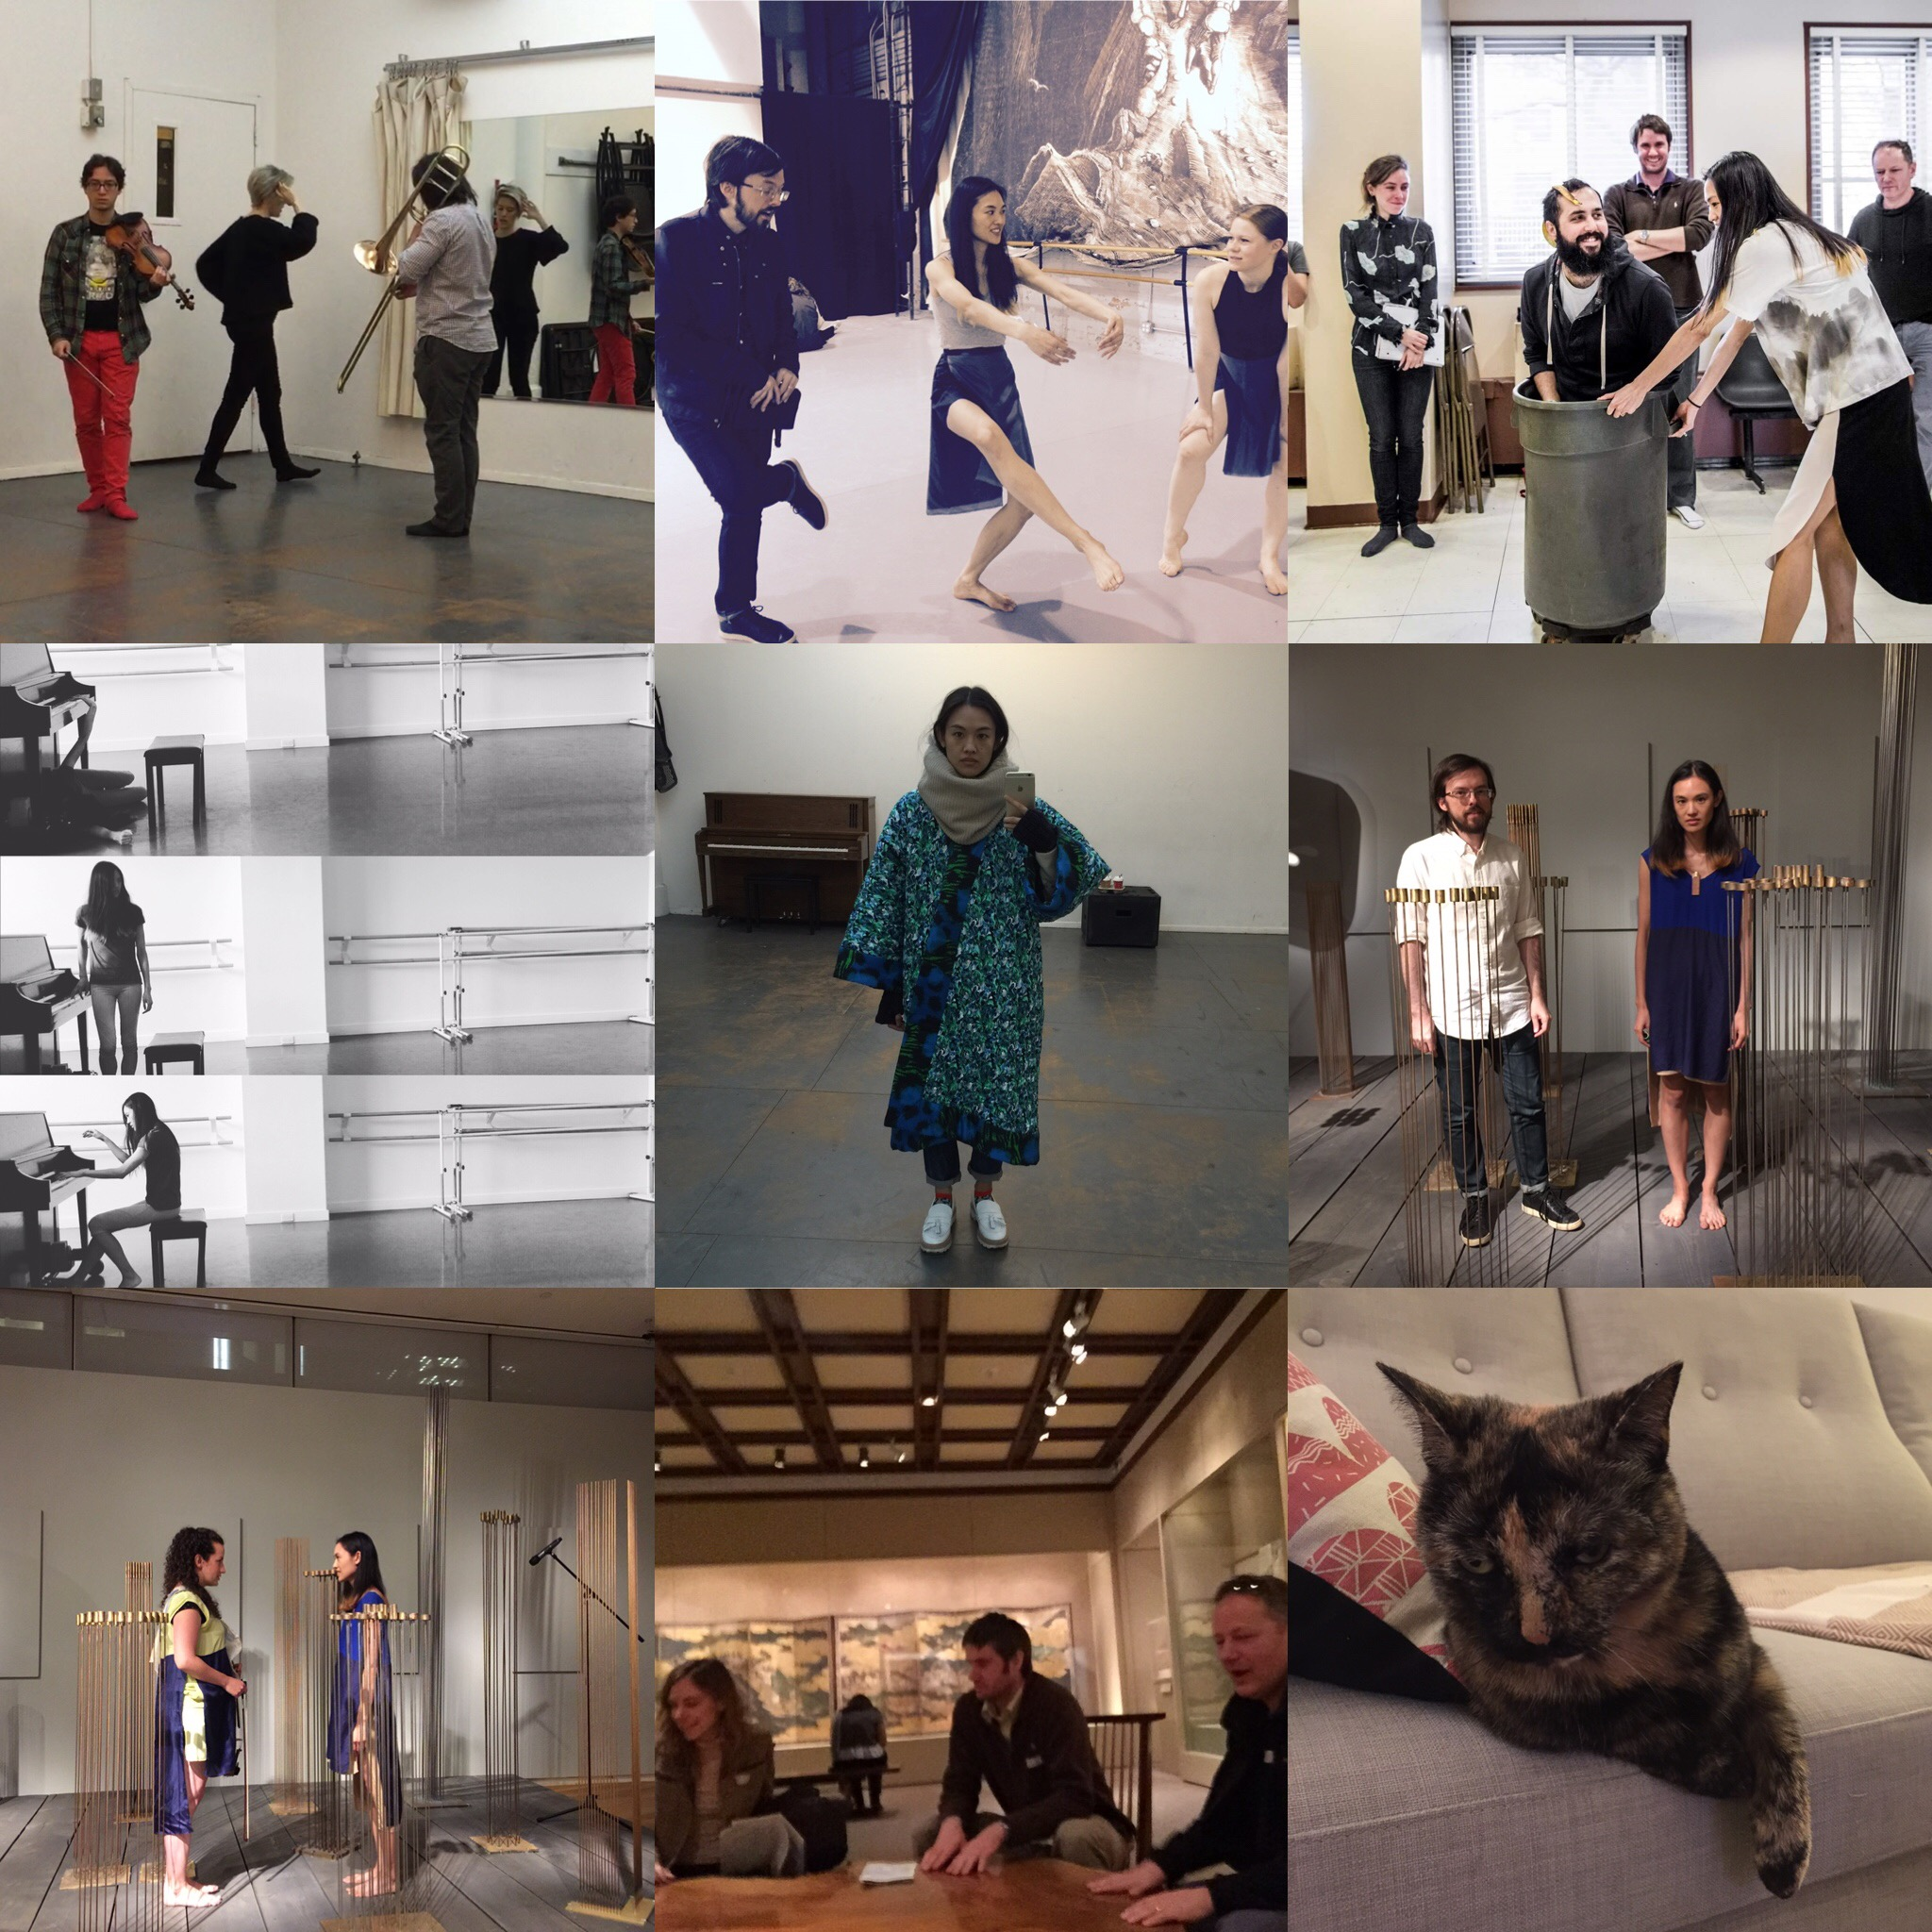 Clockwise from top left: my final Target Margin Institute investigation; backstage with Trevor and Barbie at Periapsis Open Series at GK Arts; Target Margin Intensive, March 2016; at the Museum of Art and Design (MAD) Harry Bertoia exhibit; Coco; at the Met Museum with Target Margin; MAD Bertoia exhibit with Hajnal; work process photos of  Test Site 1 ; a selfie.